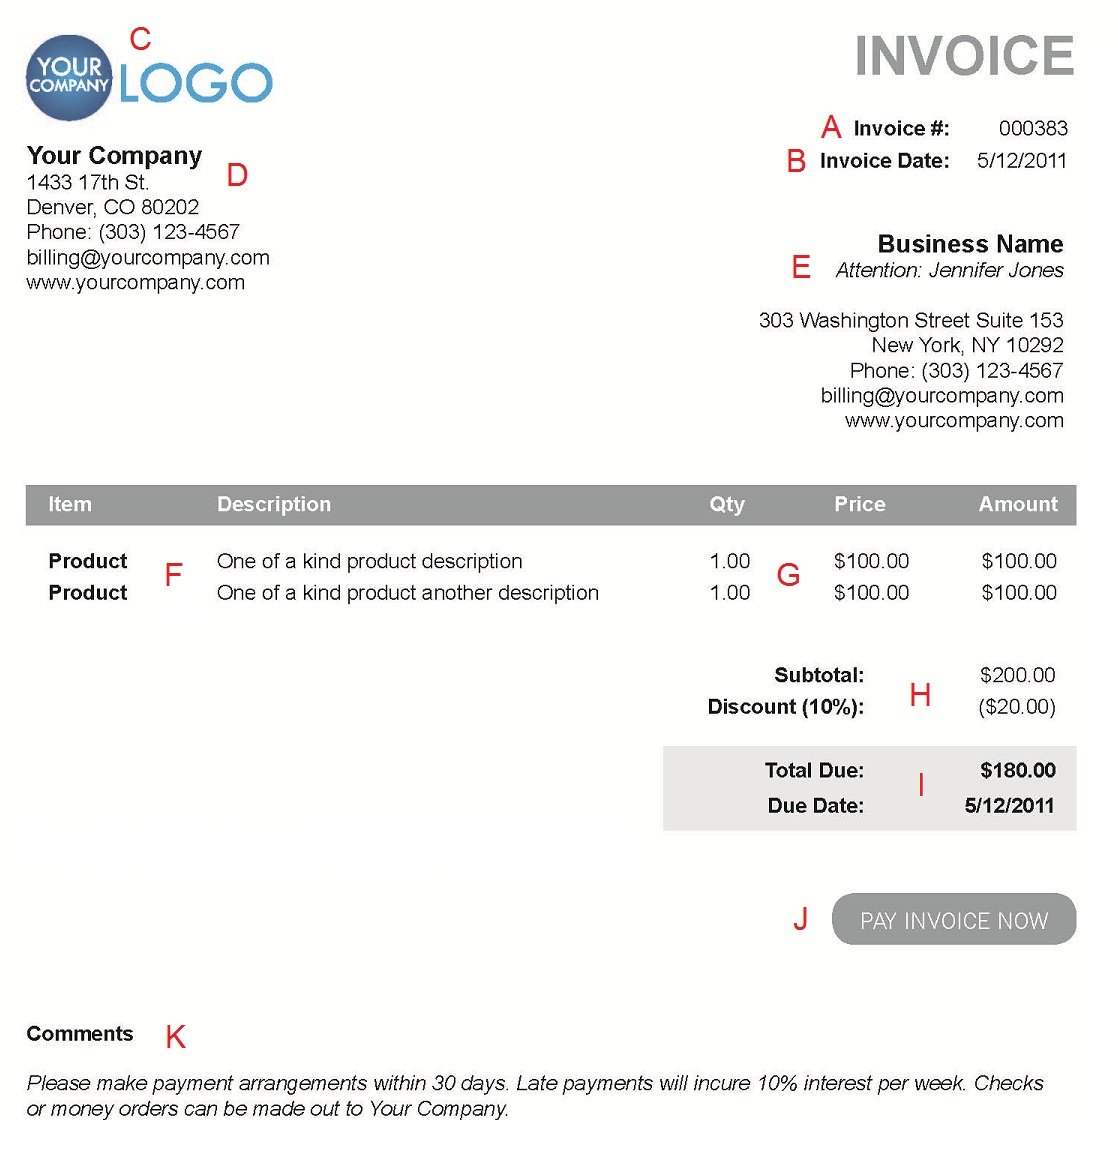 Picnictoimpeachus  Gorgeous The  Different Sections Of An Electronic Payment Invoice With Lovable A  With Endearing How To Send Invoice Through Paypal Also Patient Invoice In Addition Toyota Camry Invoice And Roofing Invoice As Well As Meaning Of Invoice Additionally Invoice Template Google From Paysimplecom With Picnictoimpeachus  Lovable The  Different Sections Of An Electronic Payment Invoice With Endearing A  And Gorgeous How To Send Invoice Through Paypal Also Patient Invoice In Addition Toyota Camry Invoice From Paysimplecom